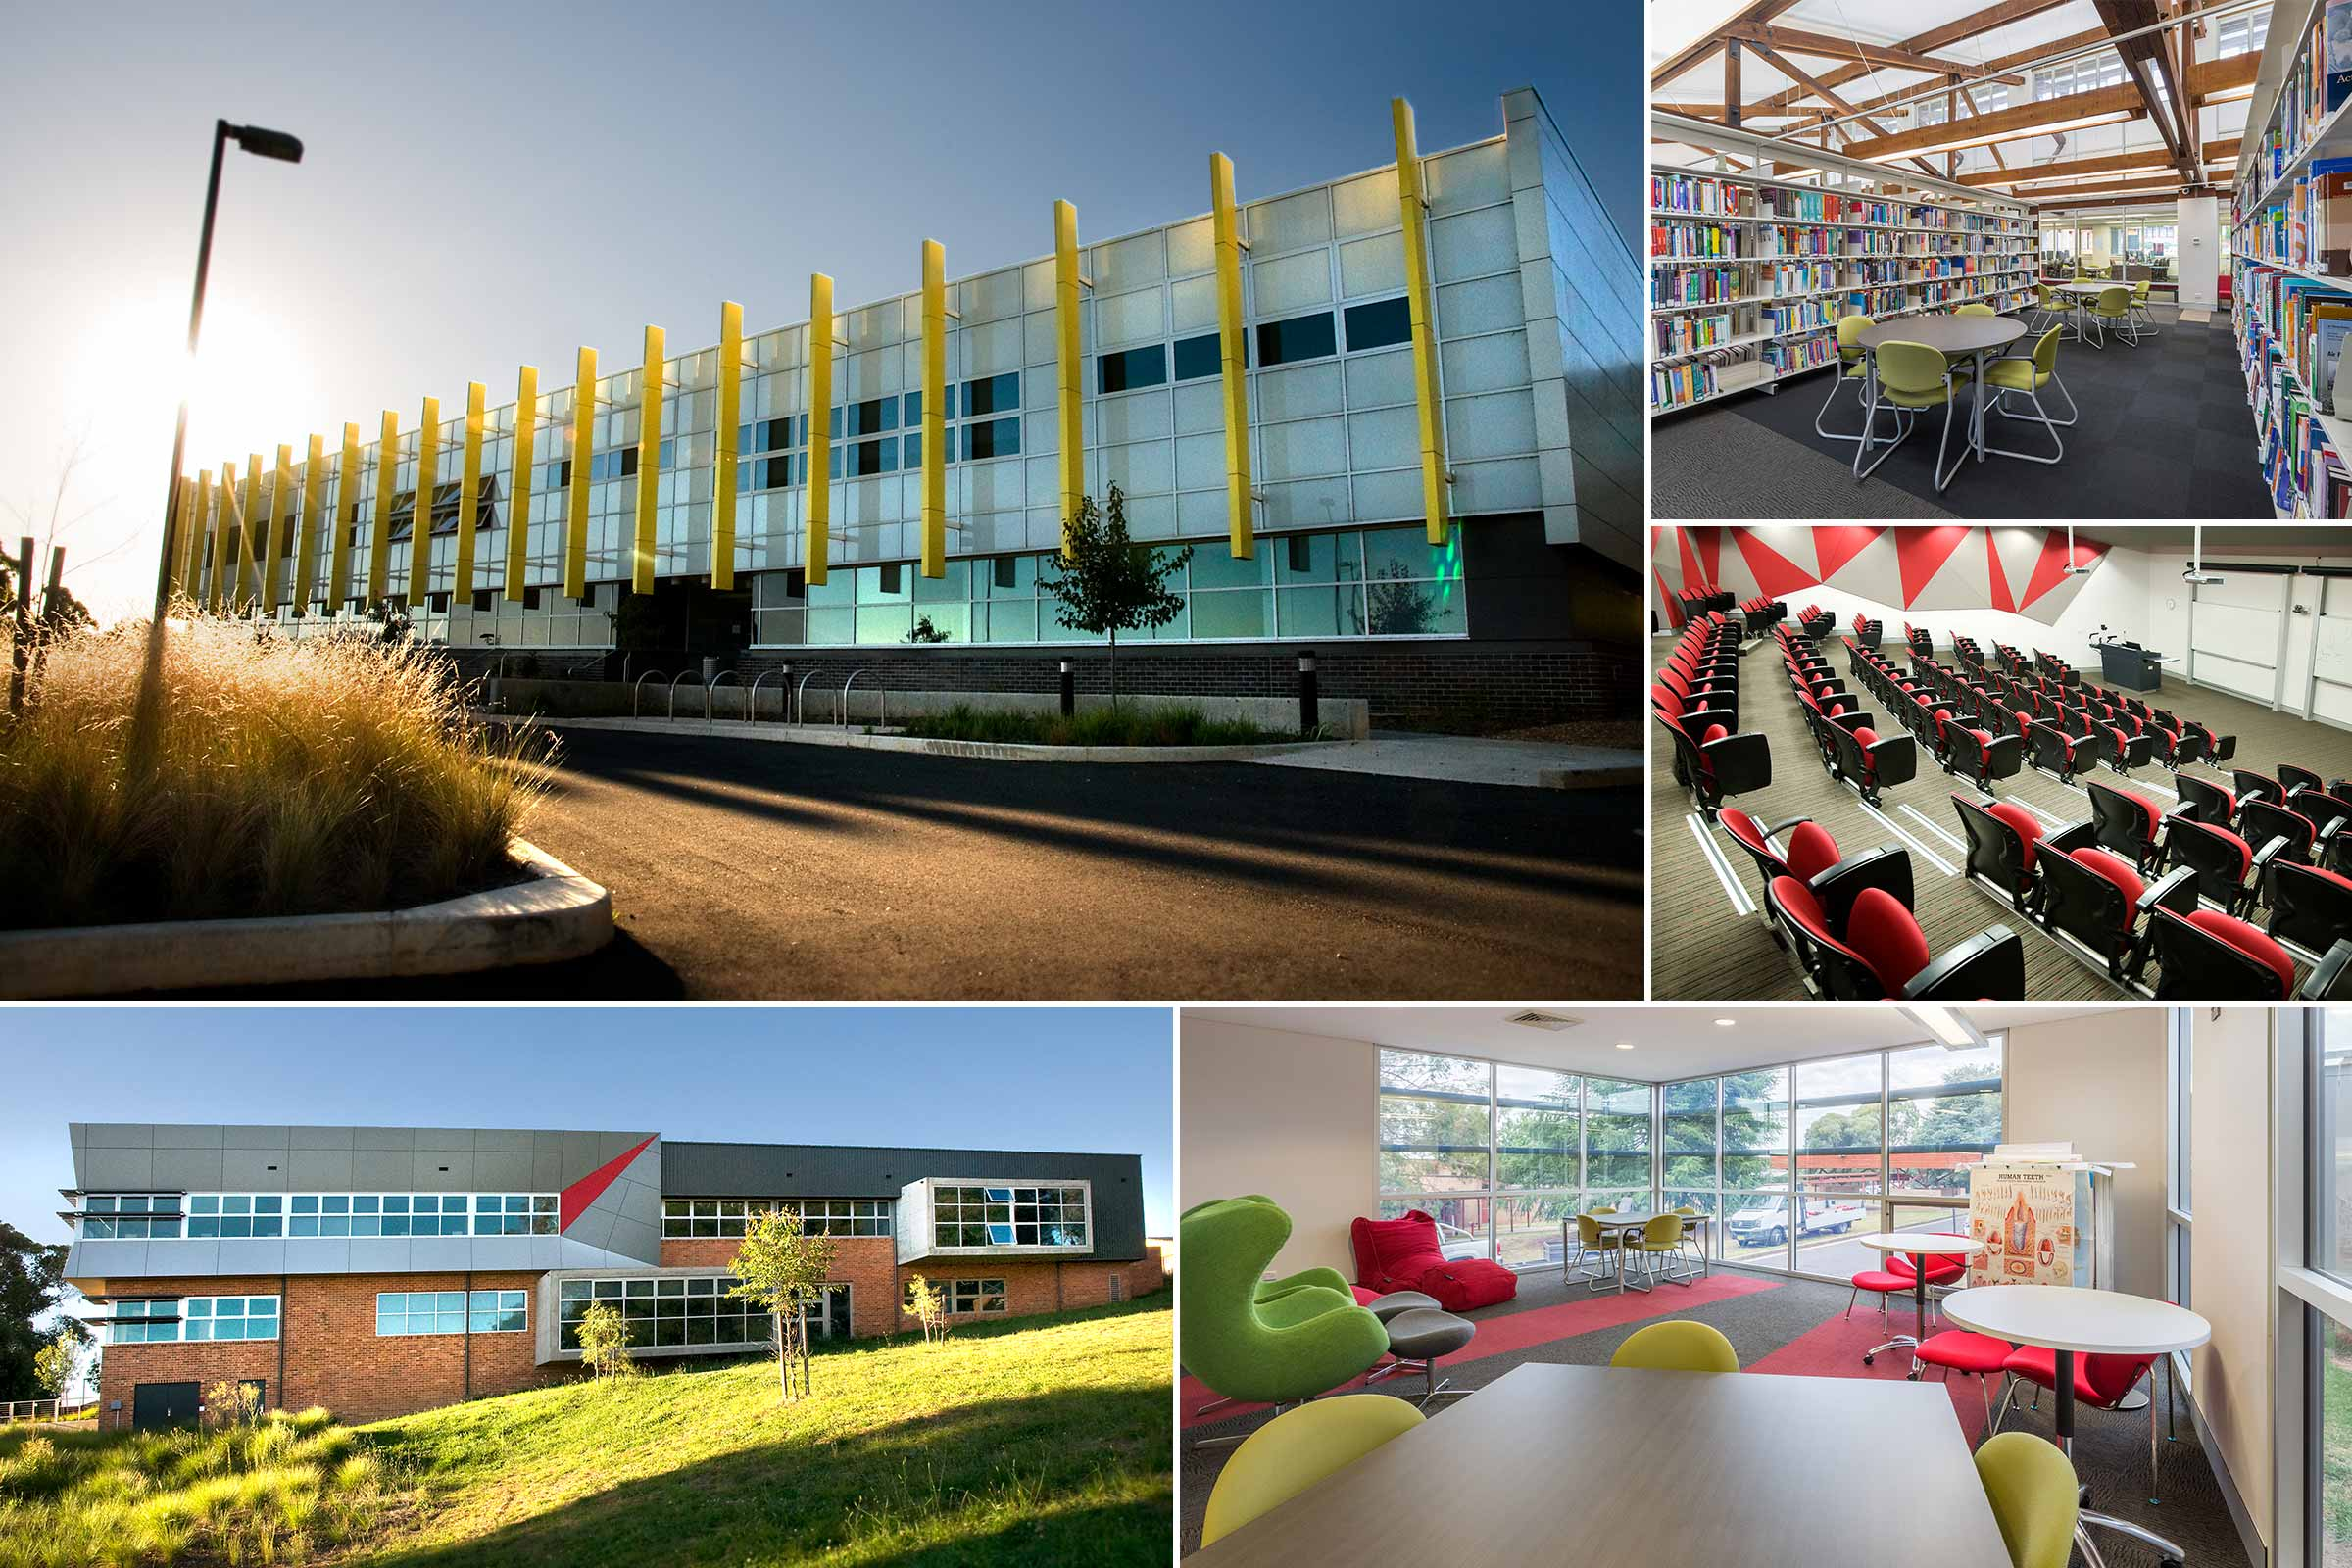 Collage of buildings at Charles Sturt University in Orange